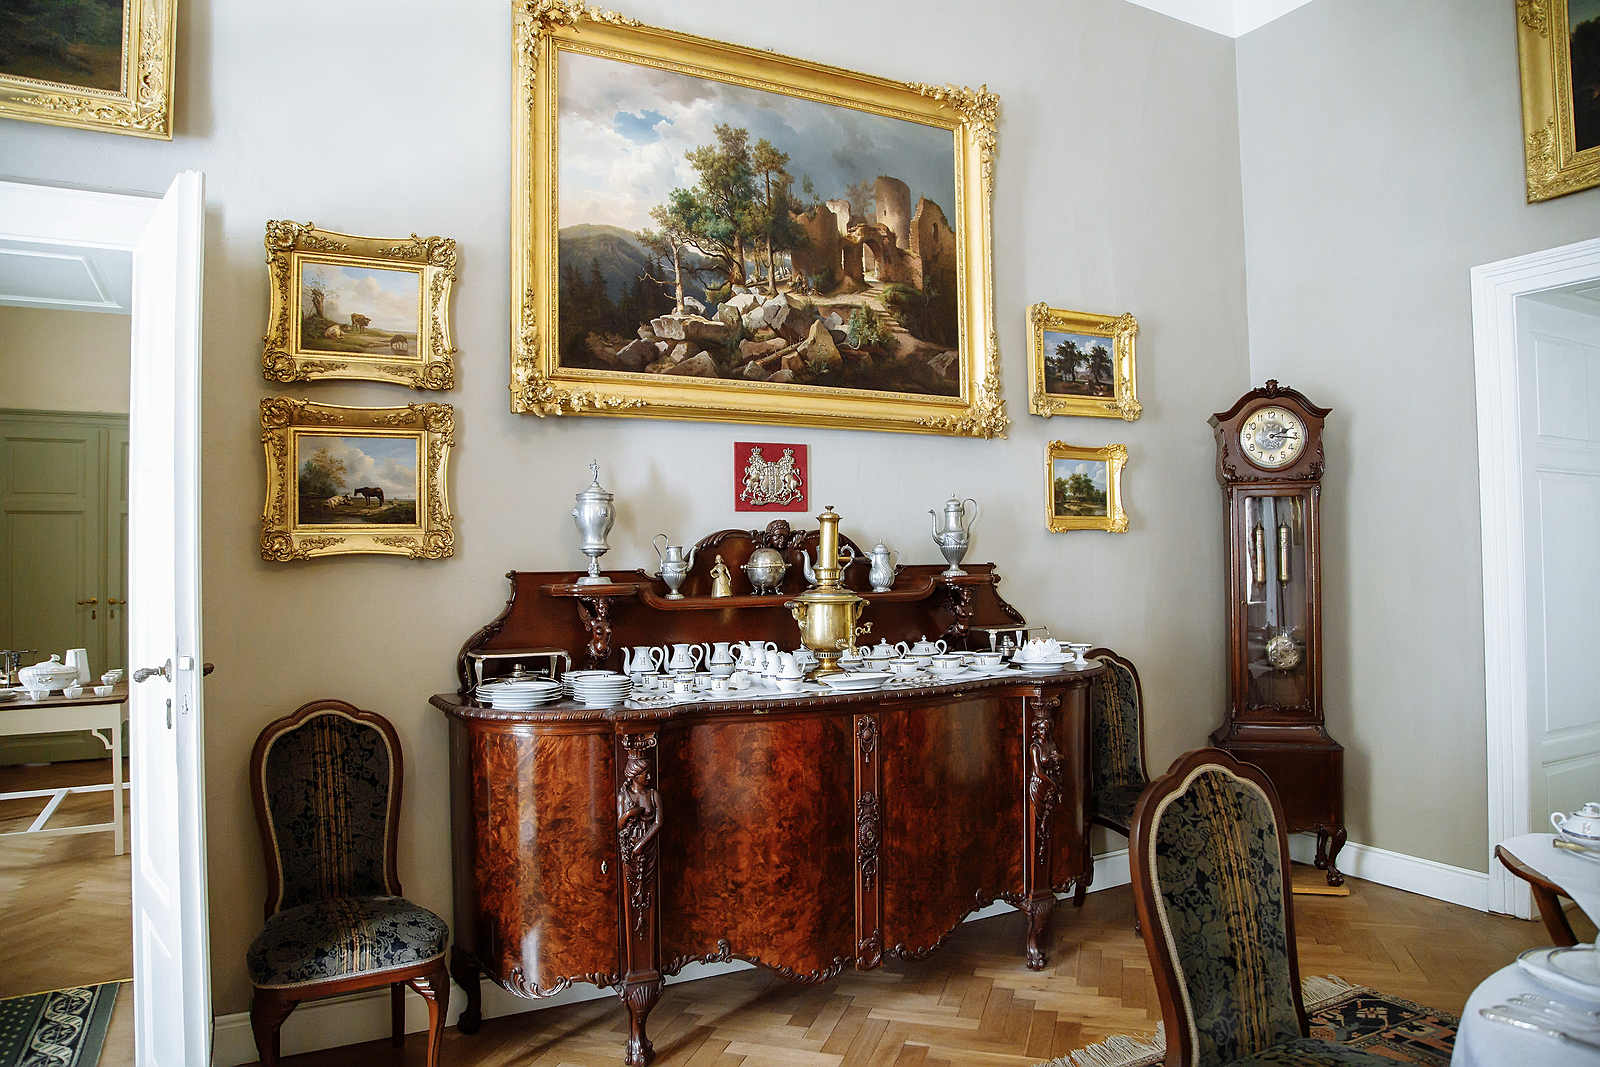 How to Store Antiques and Collectibles